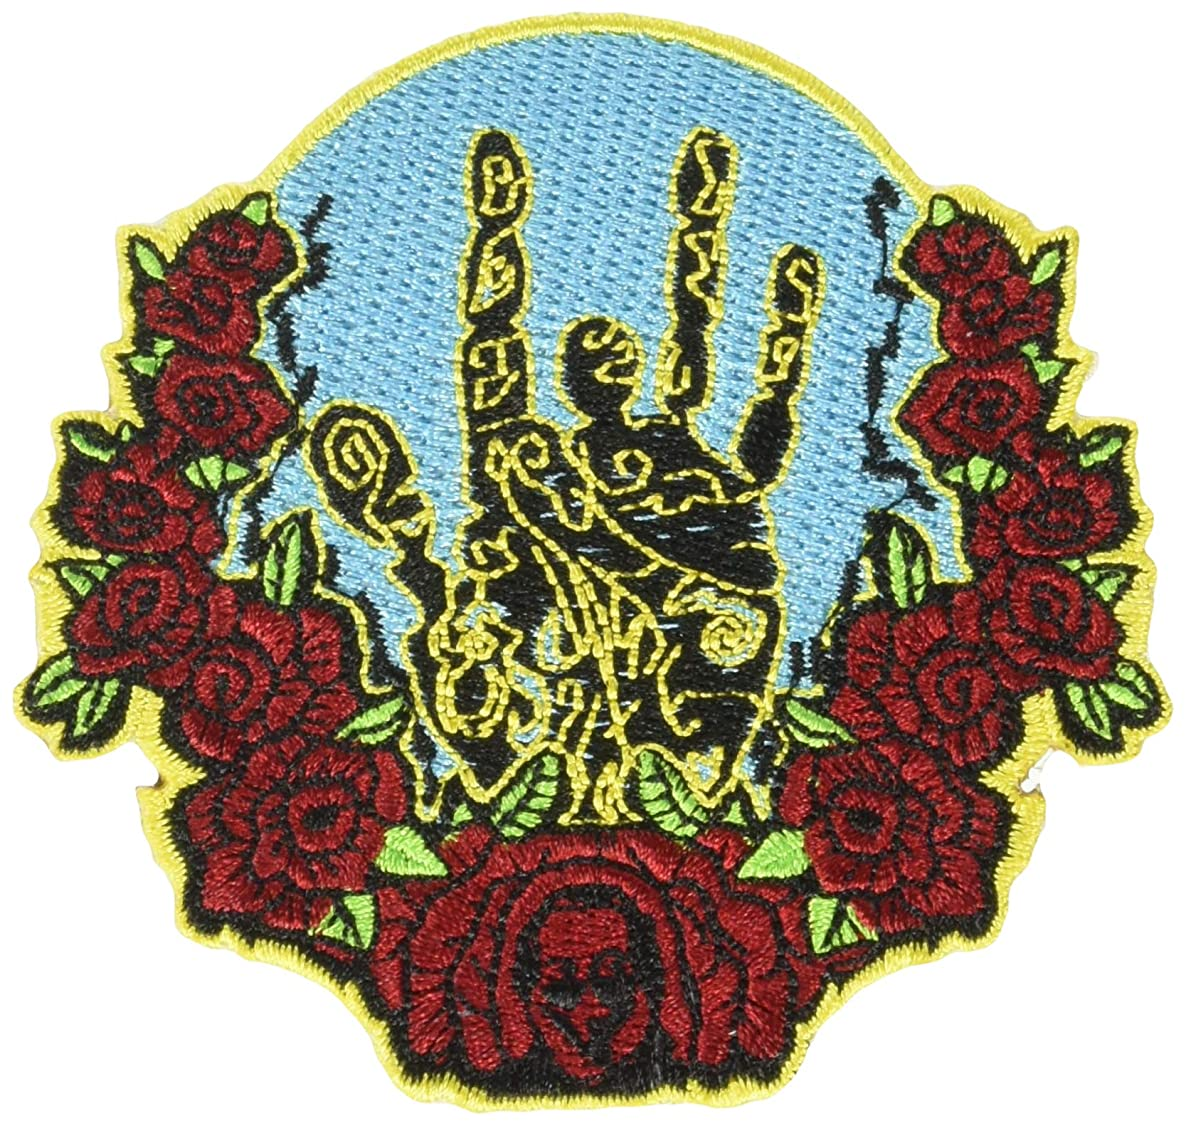 C&D Visionary Jerry Garcia Hand and Roses Patch Iron-On Patches (P-4548)